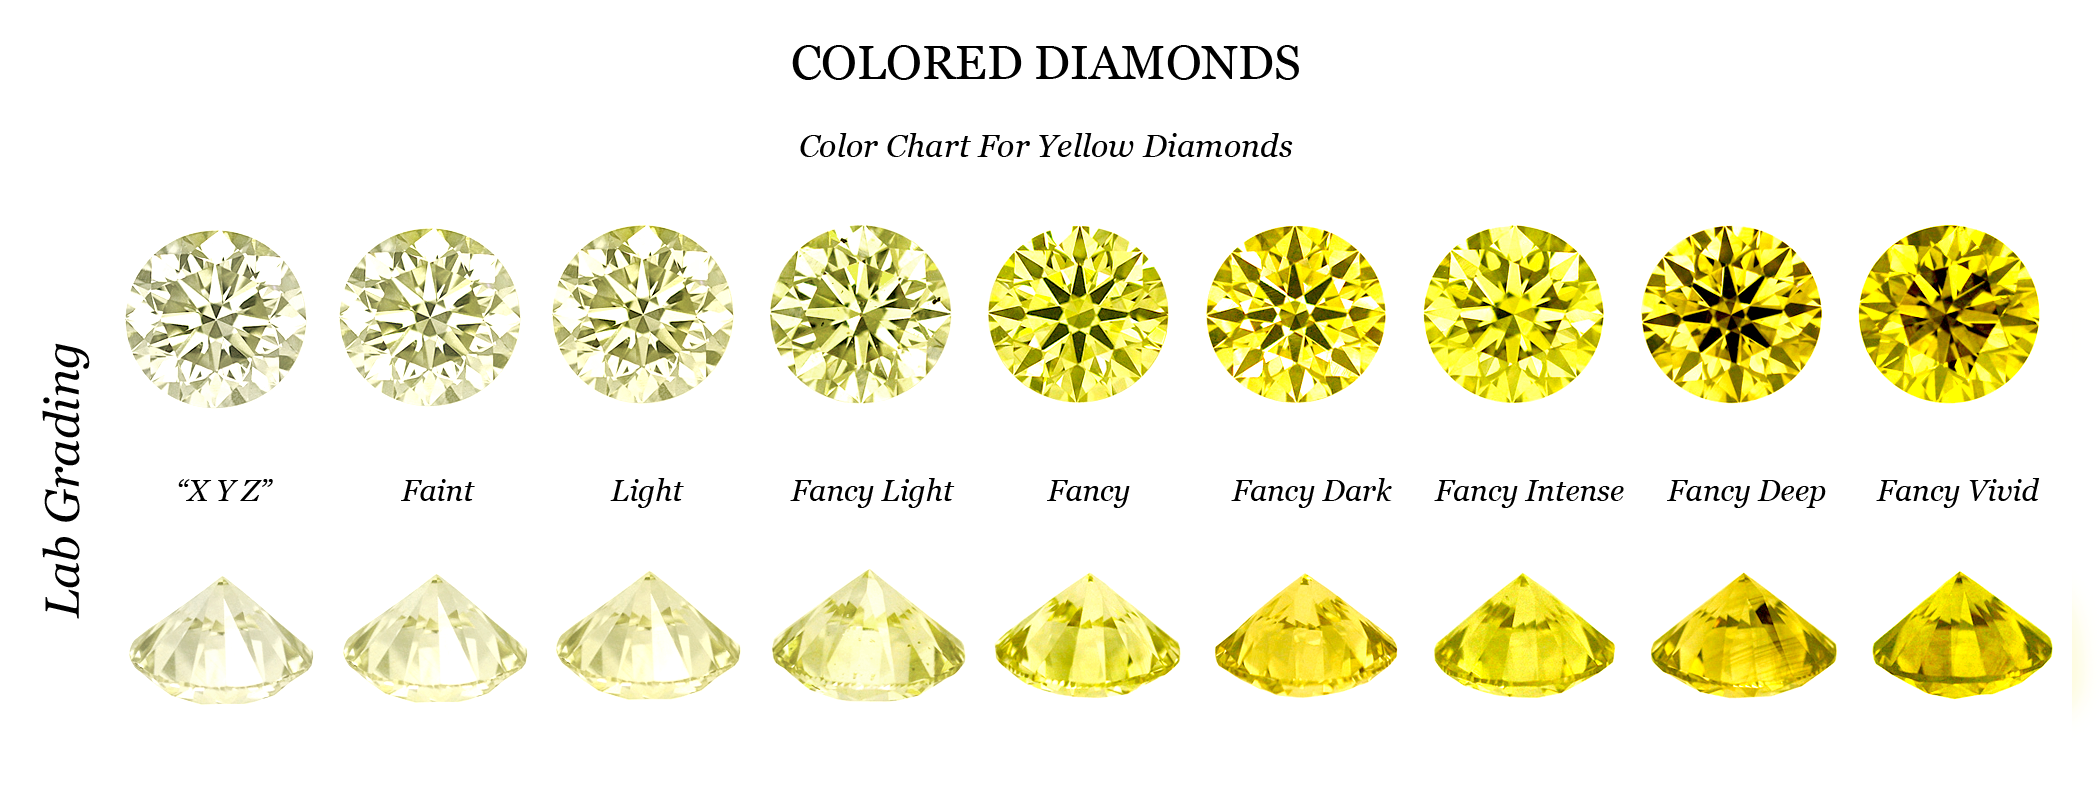 yellow diamonds colored diamonds fancy color diamond